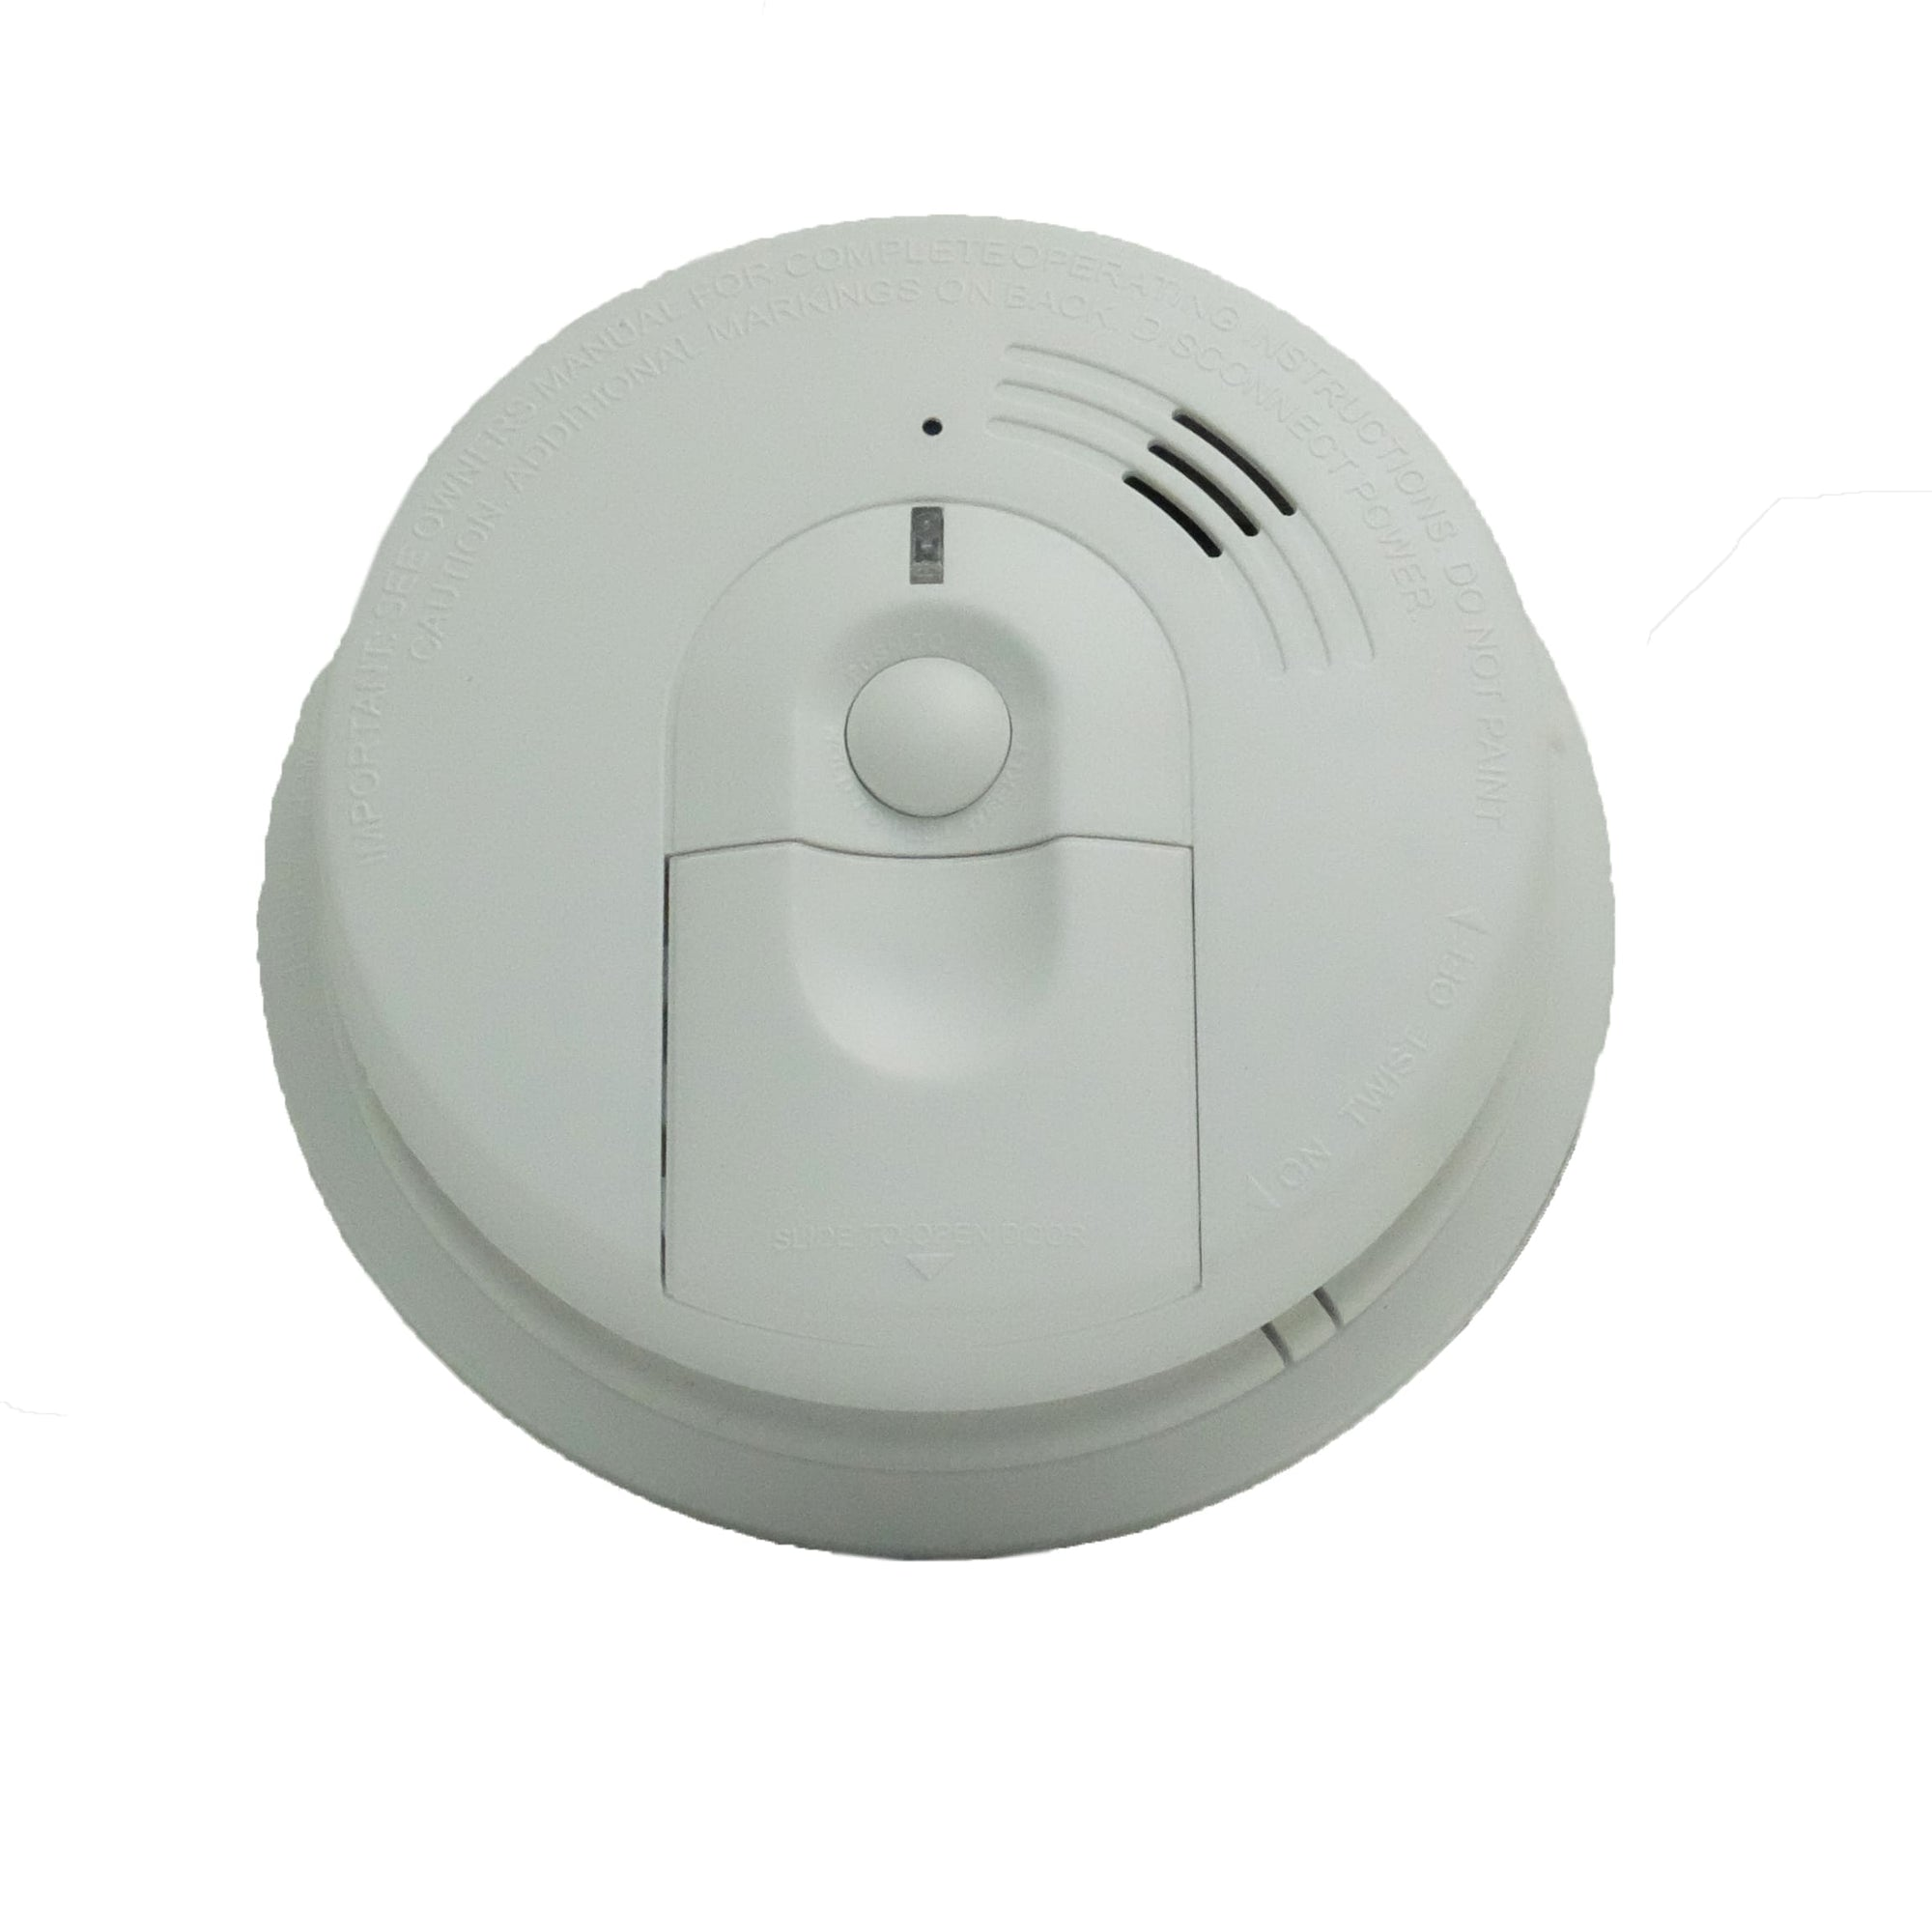 Top view smoke detector spy camera with direct current hardwire